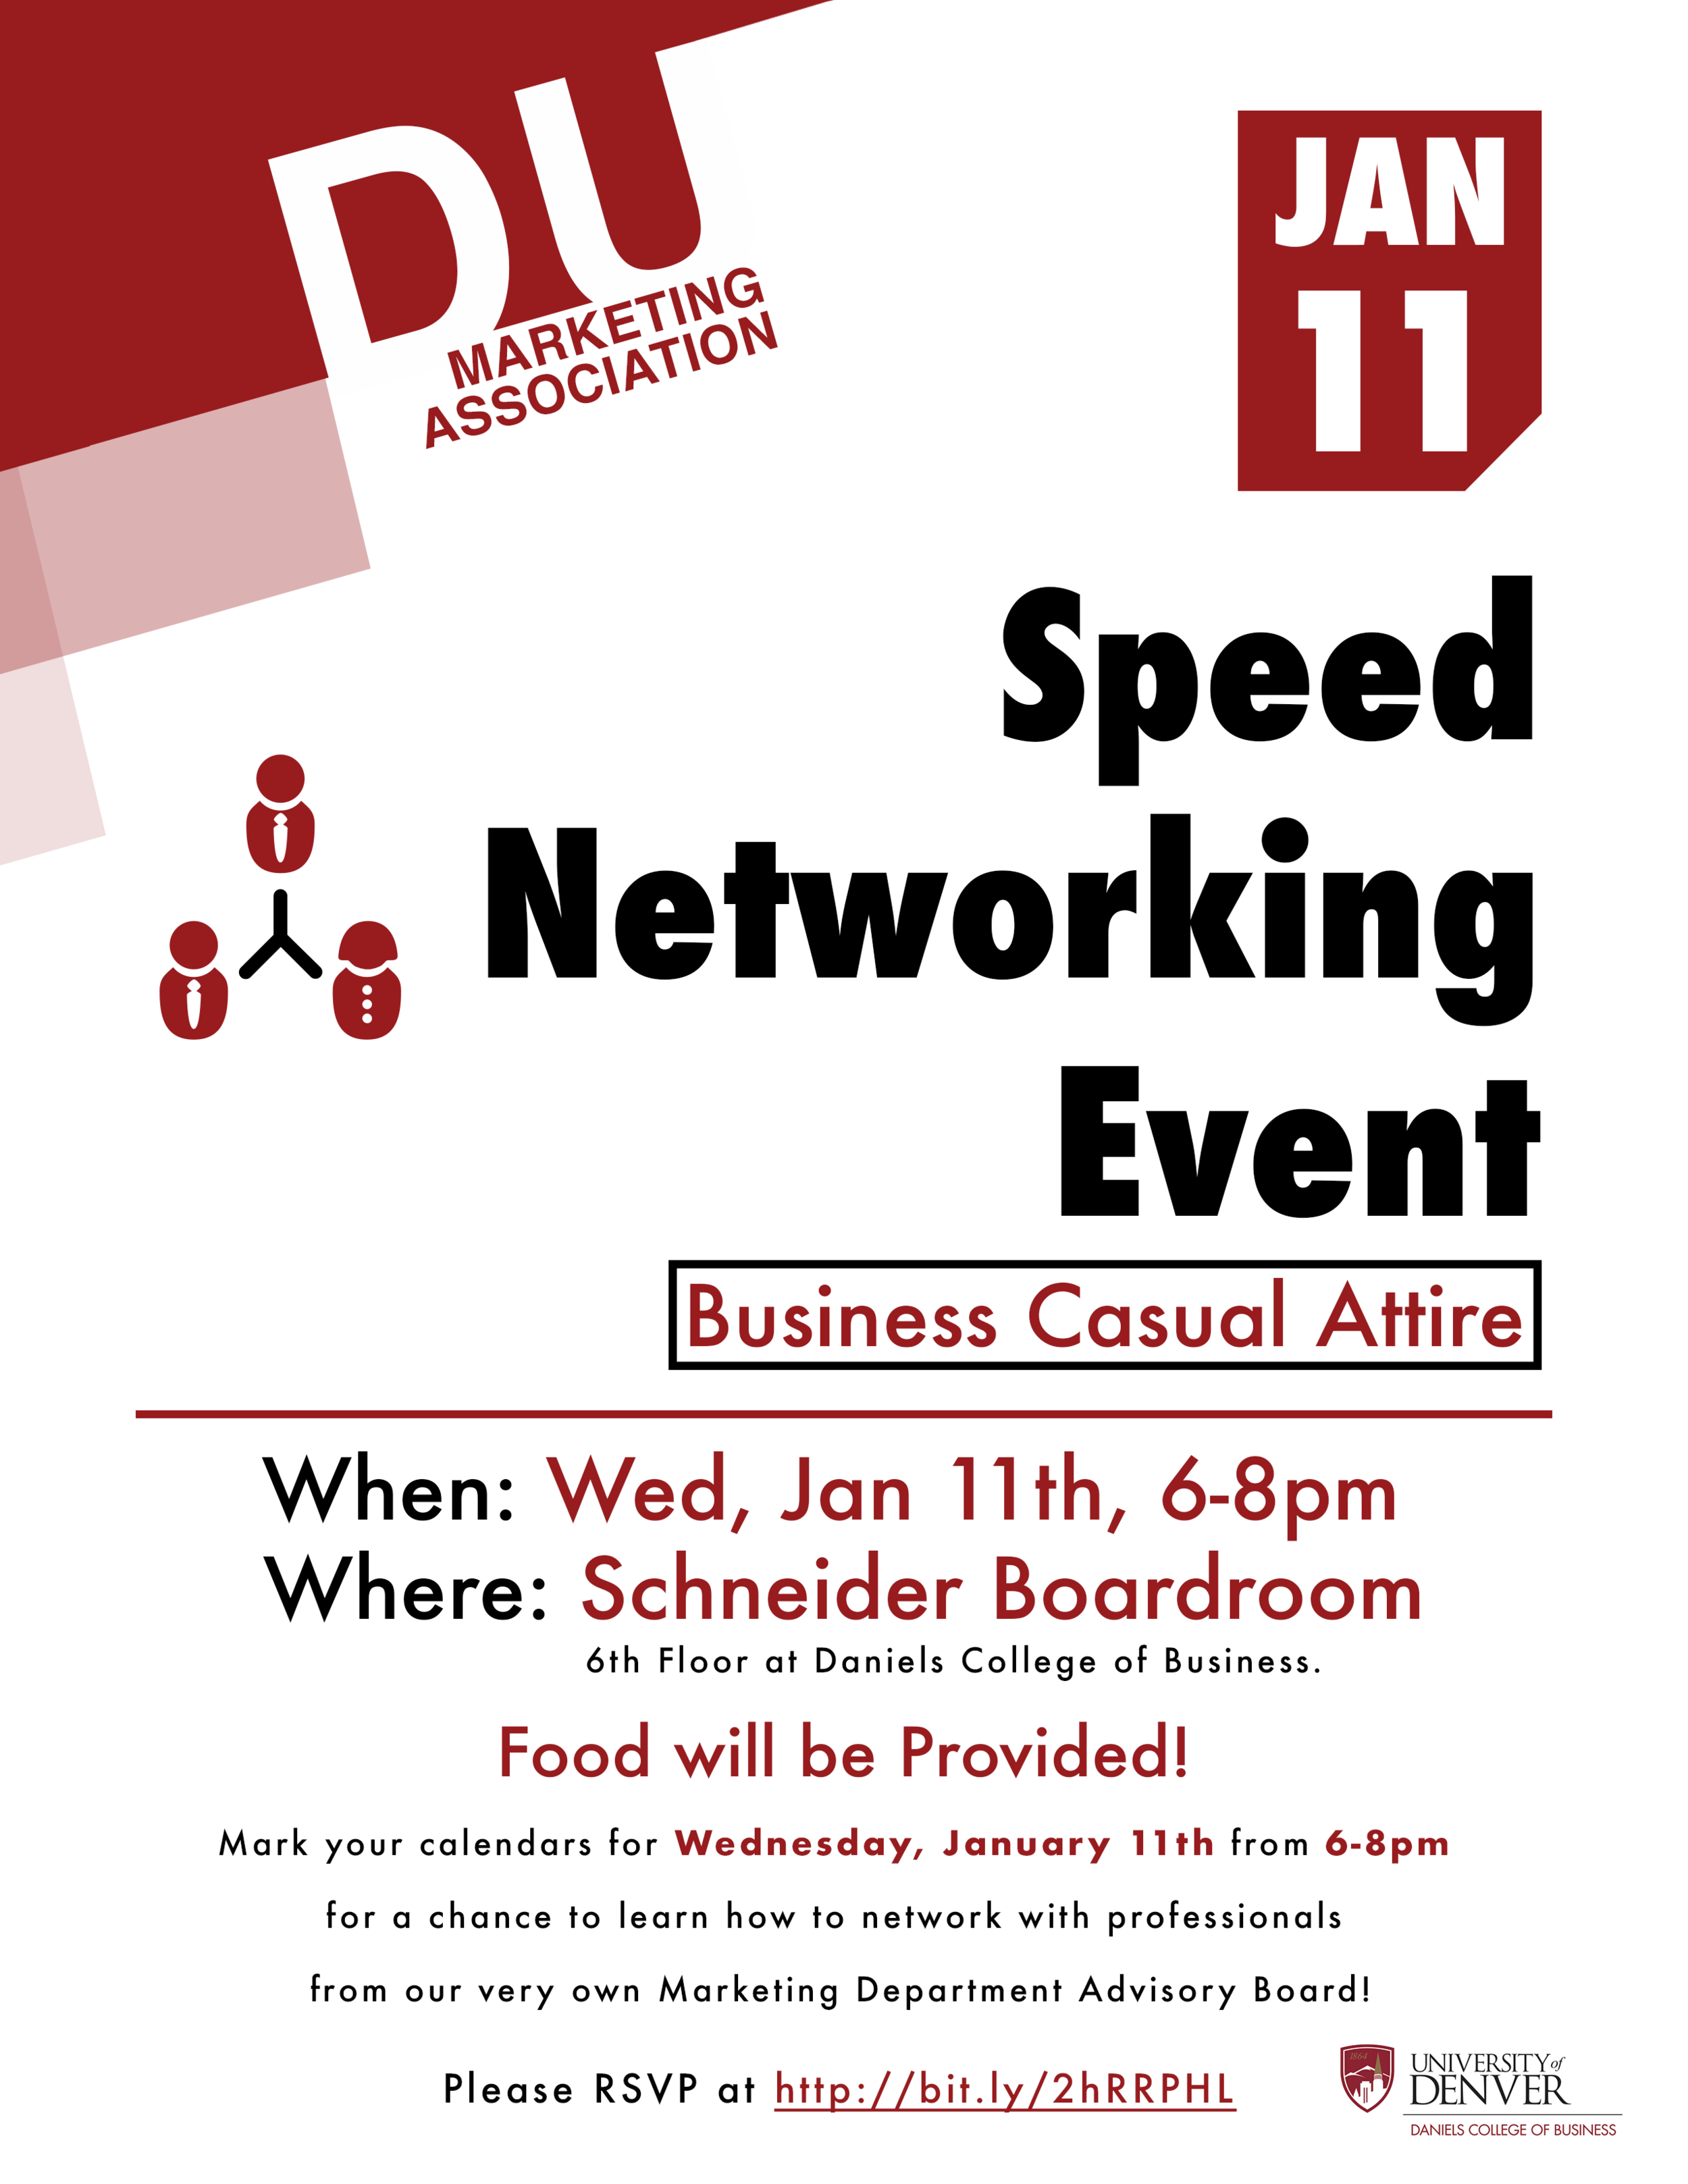 Speed Networking Event Flyer